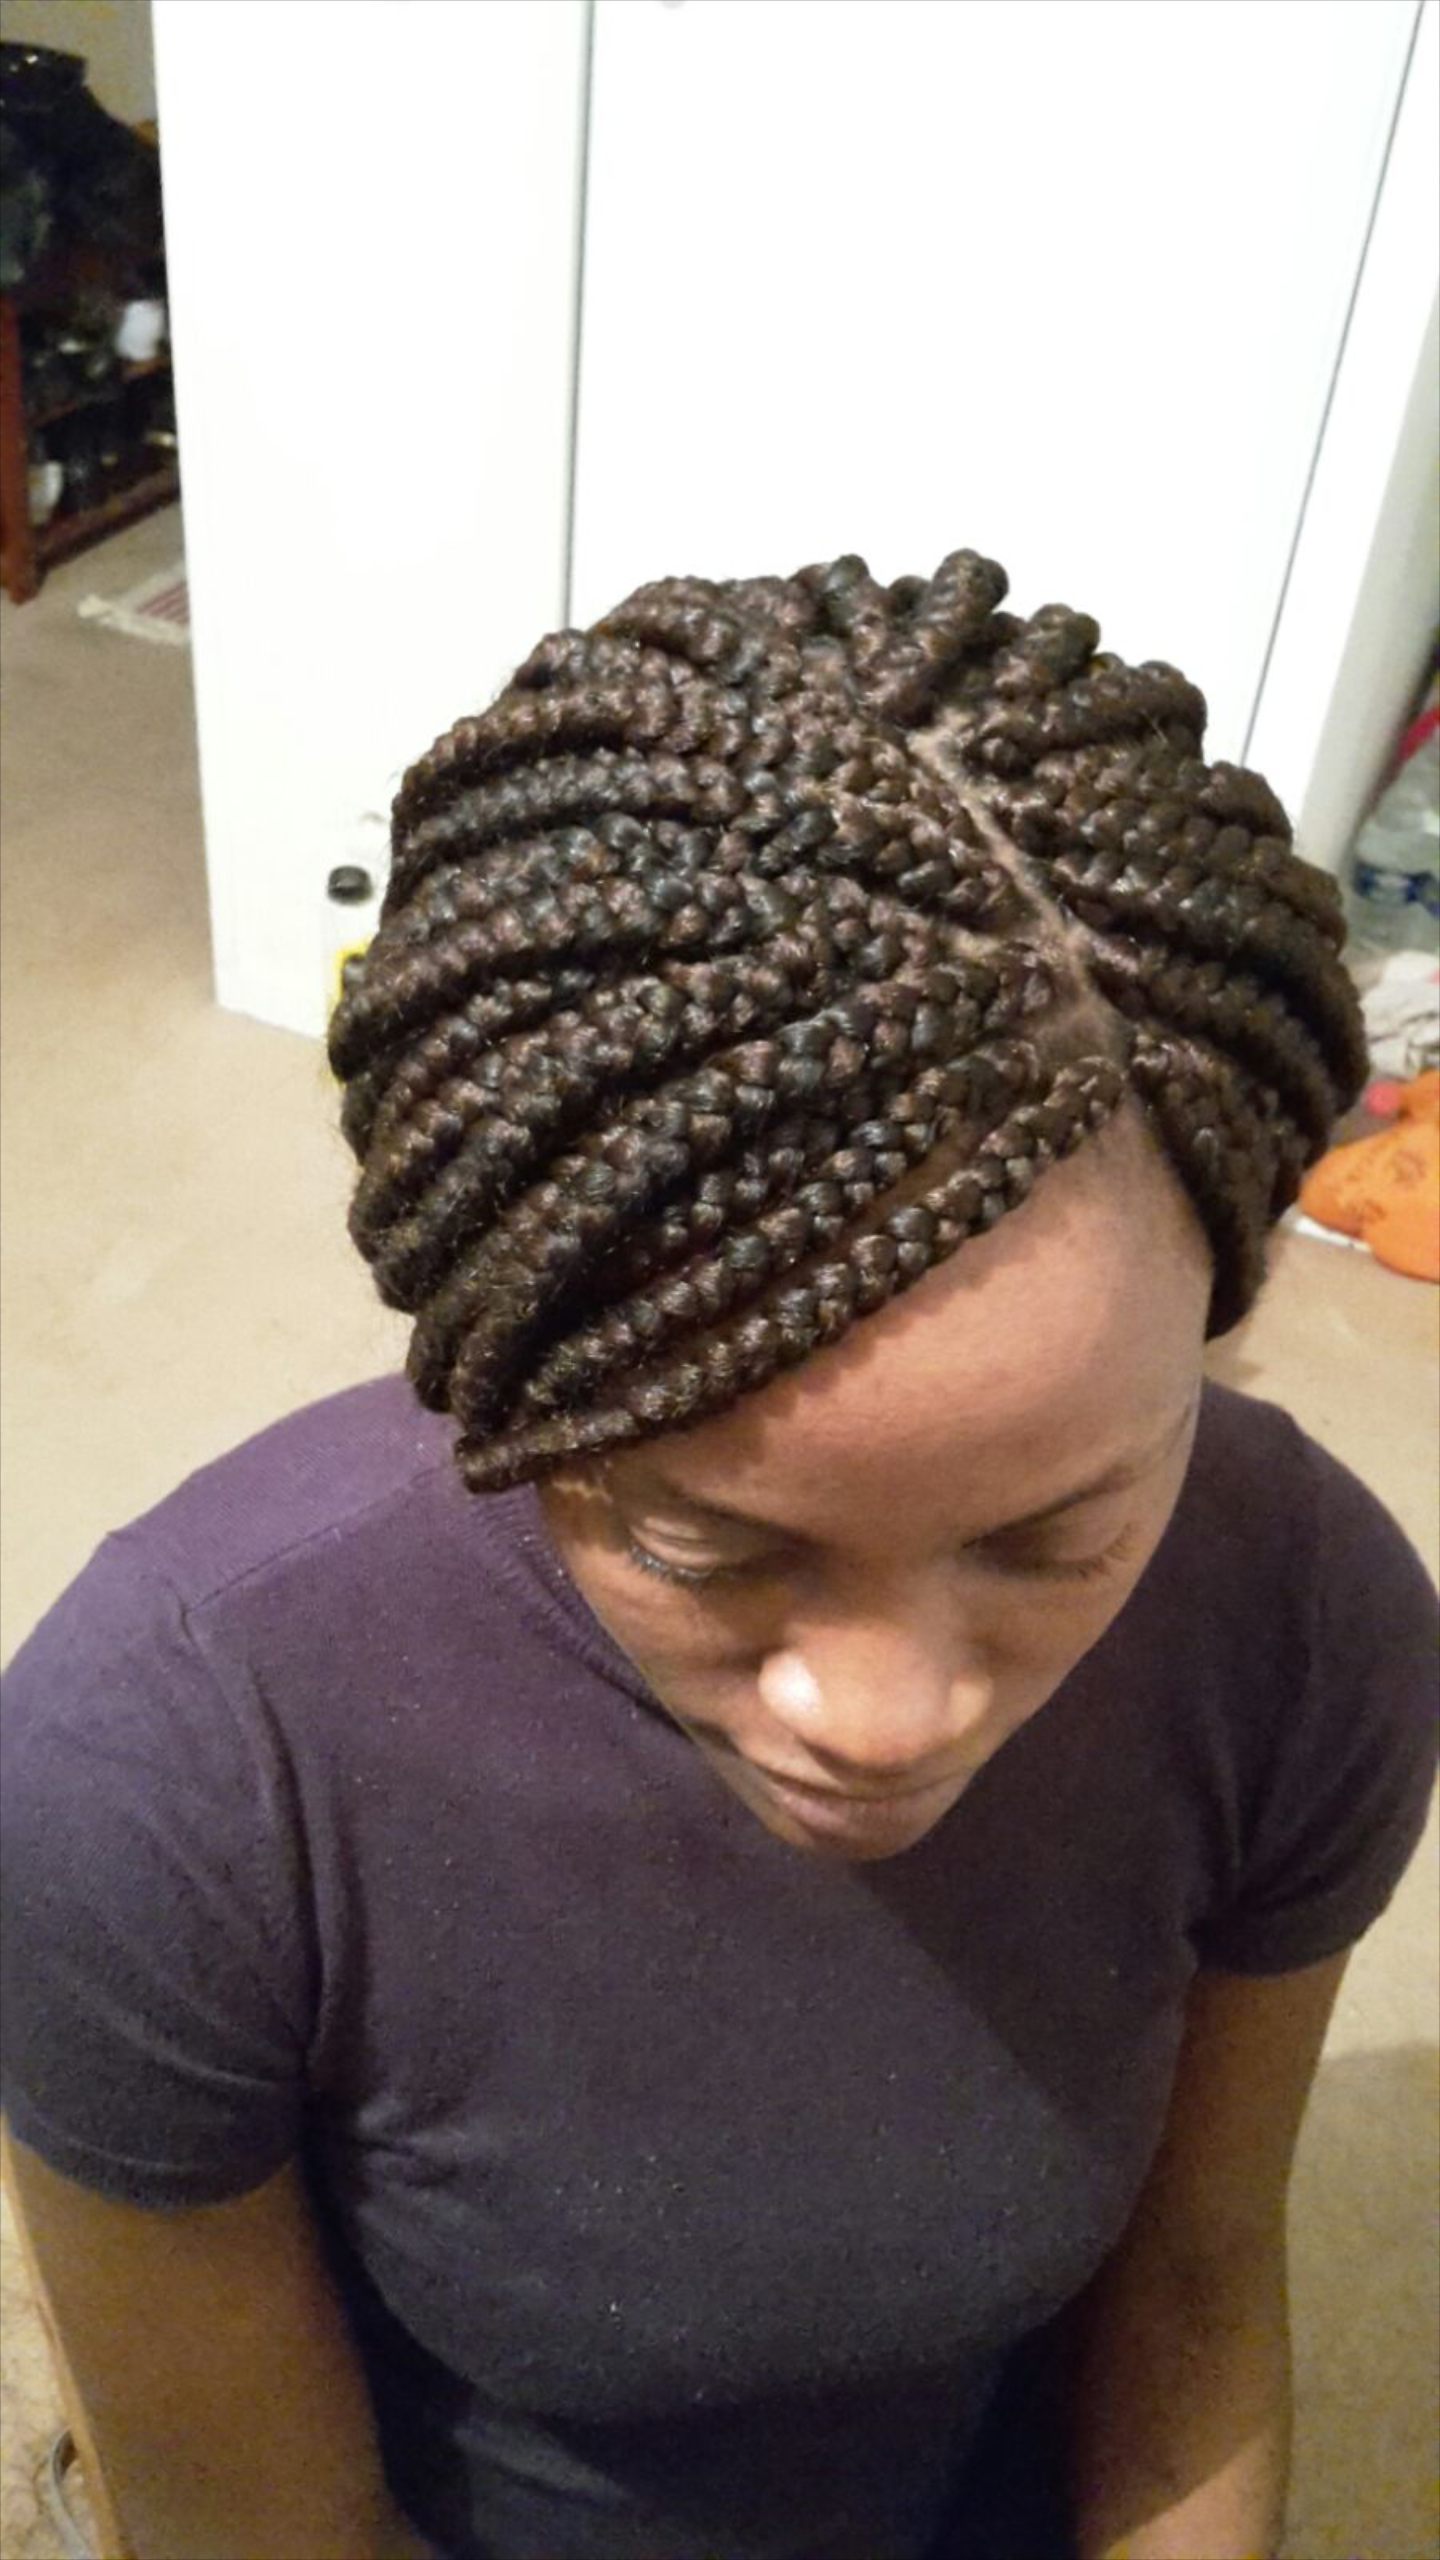 salon de coiffure afro tresse tresses box braids crochet braids vanilles tissages paris 75 77 78 91 92 93 94 95 LAHBTZQB